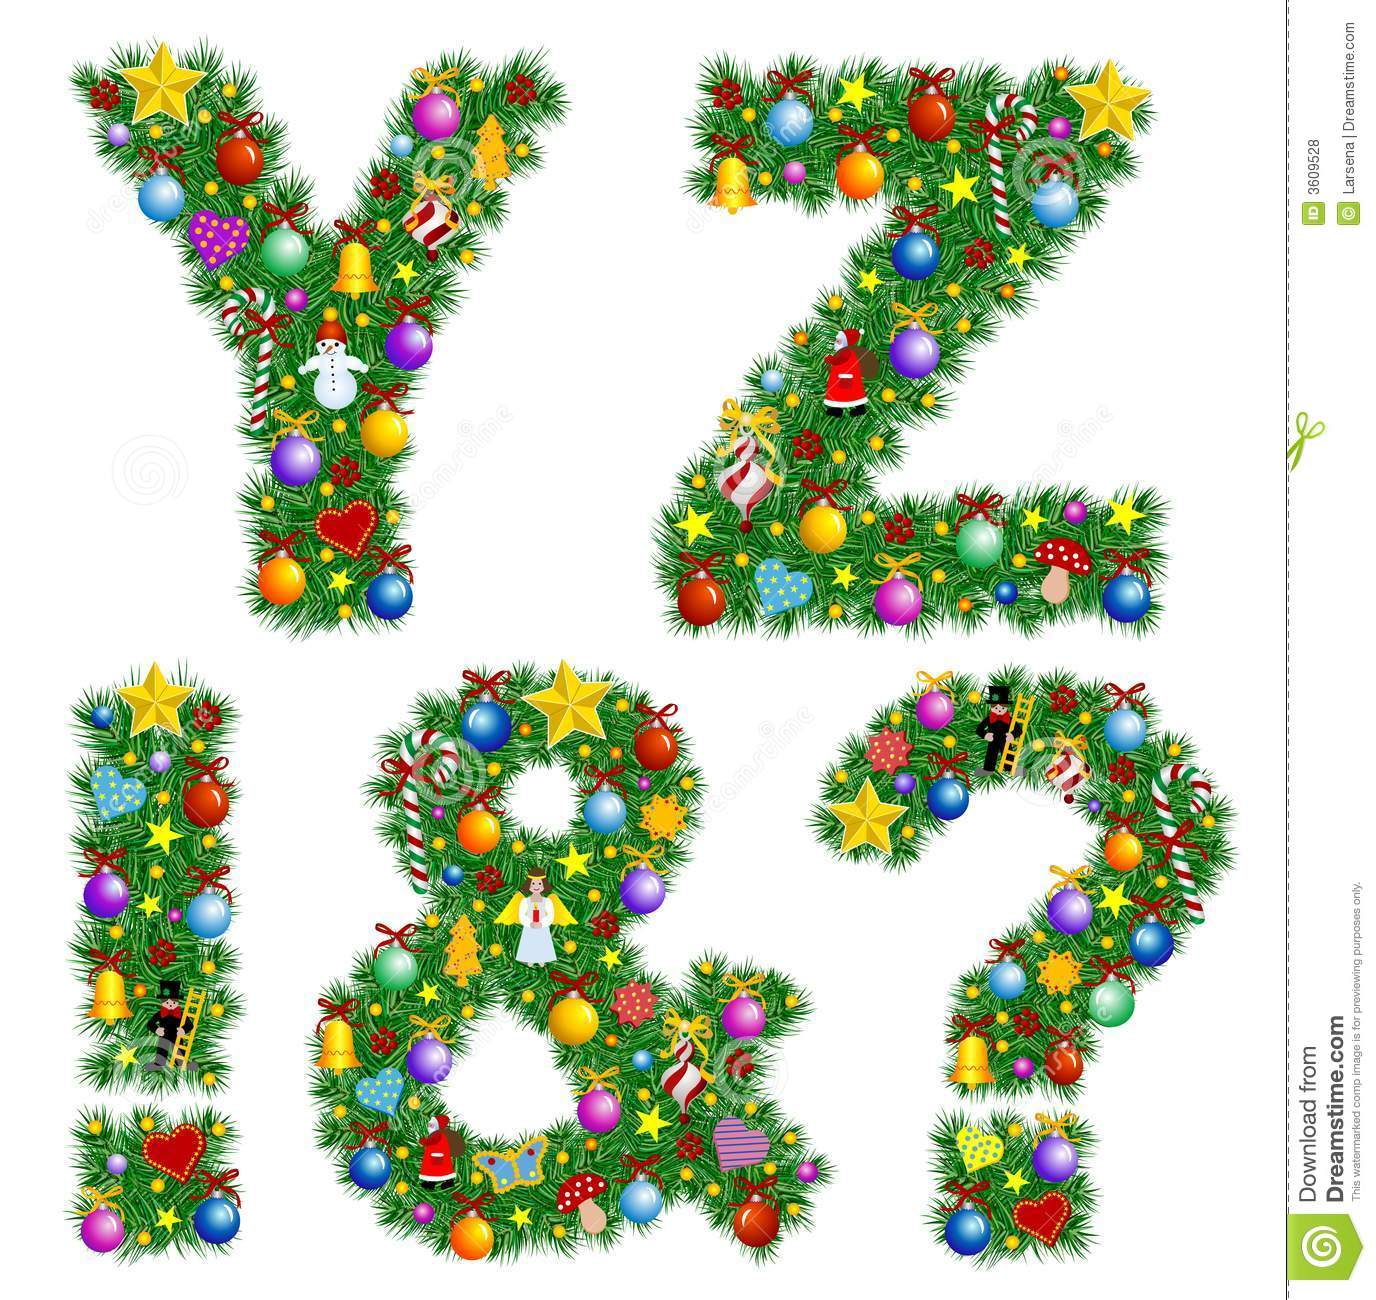 Free christmas alphabet clipart transparent library Alphabet On Christmas Ornaments Stock Photos - Image: 3766043 transparent library